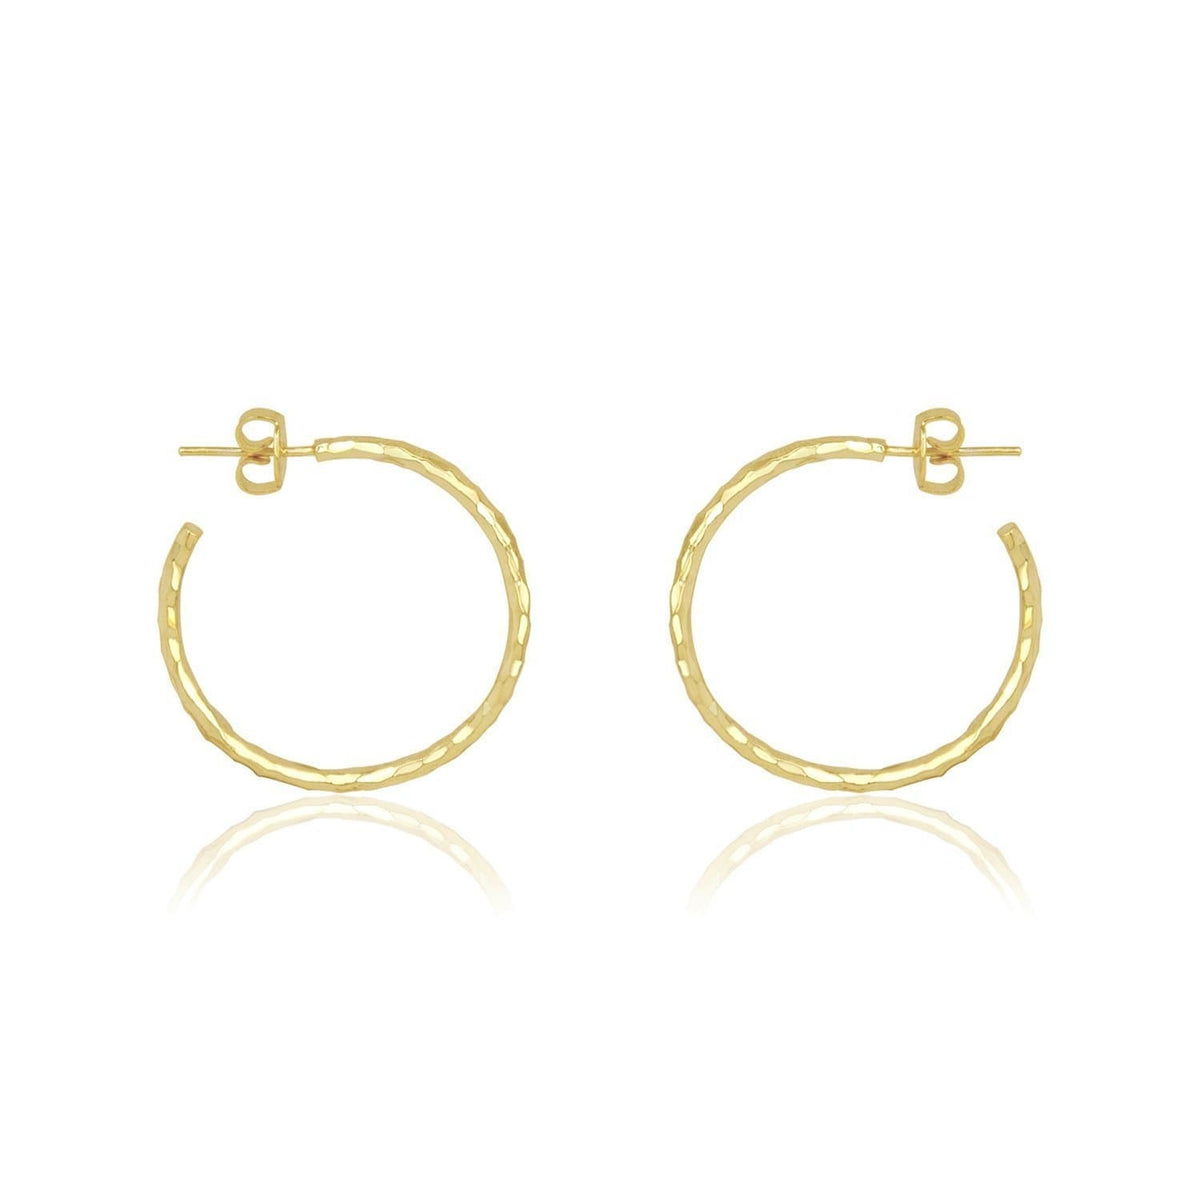 "1"" Hermes Hammered Hoop Earrings"